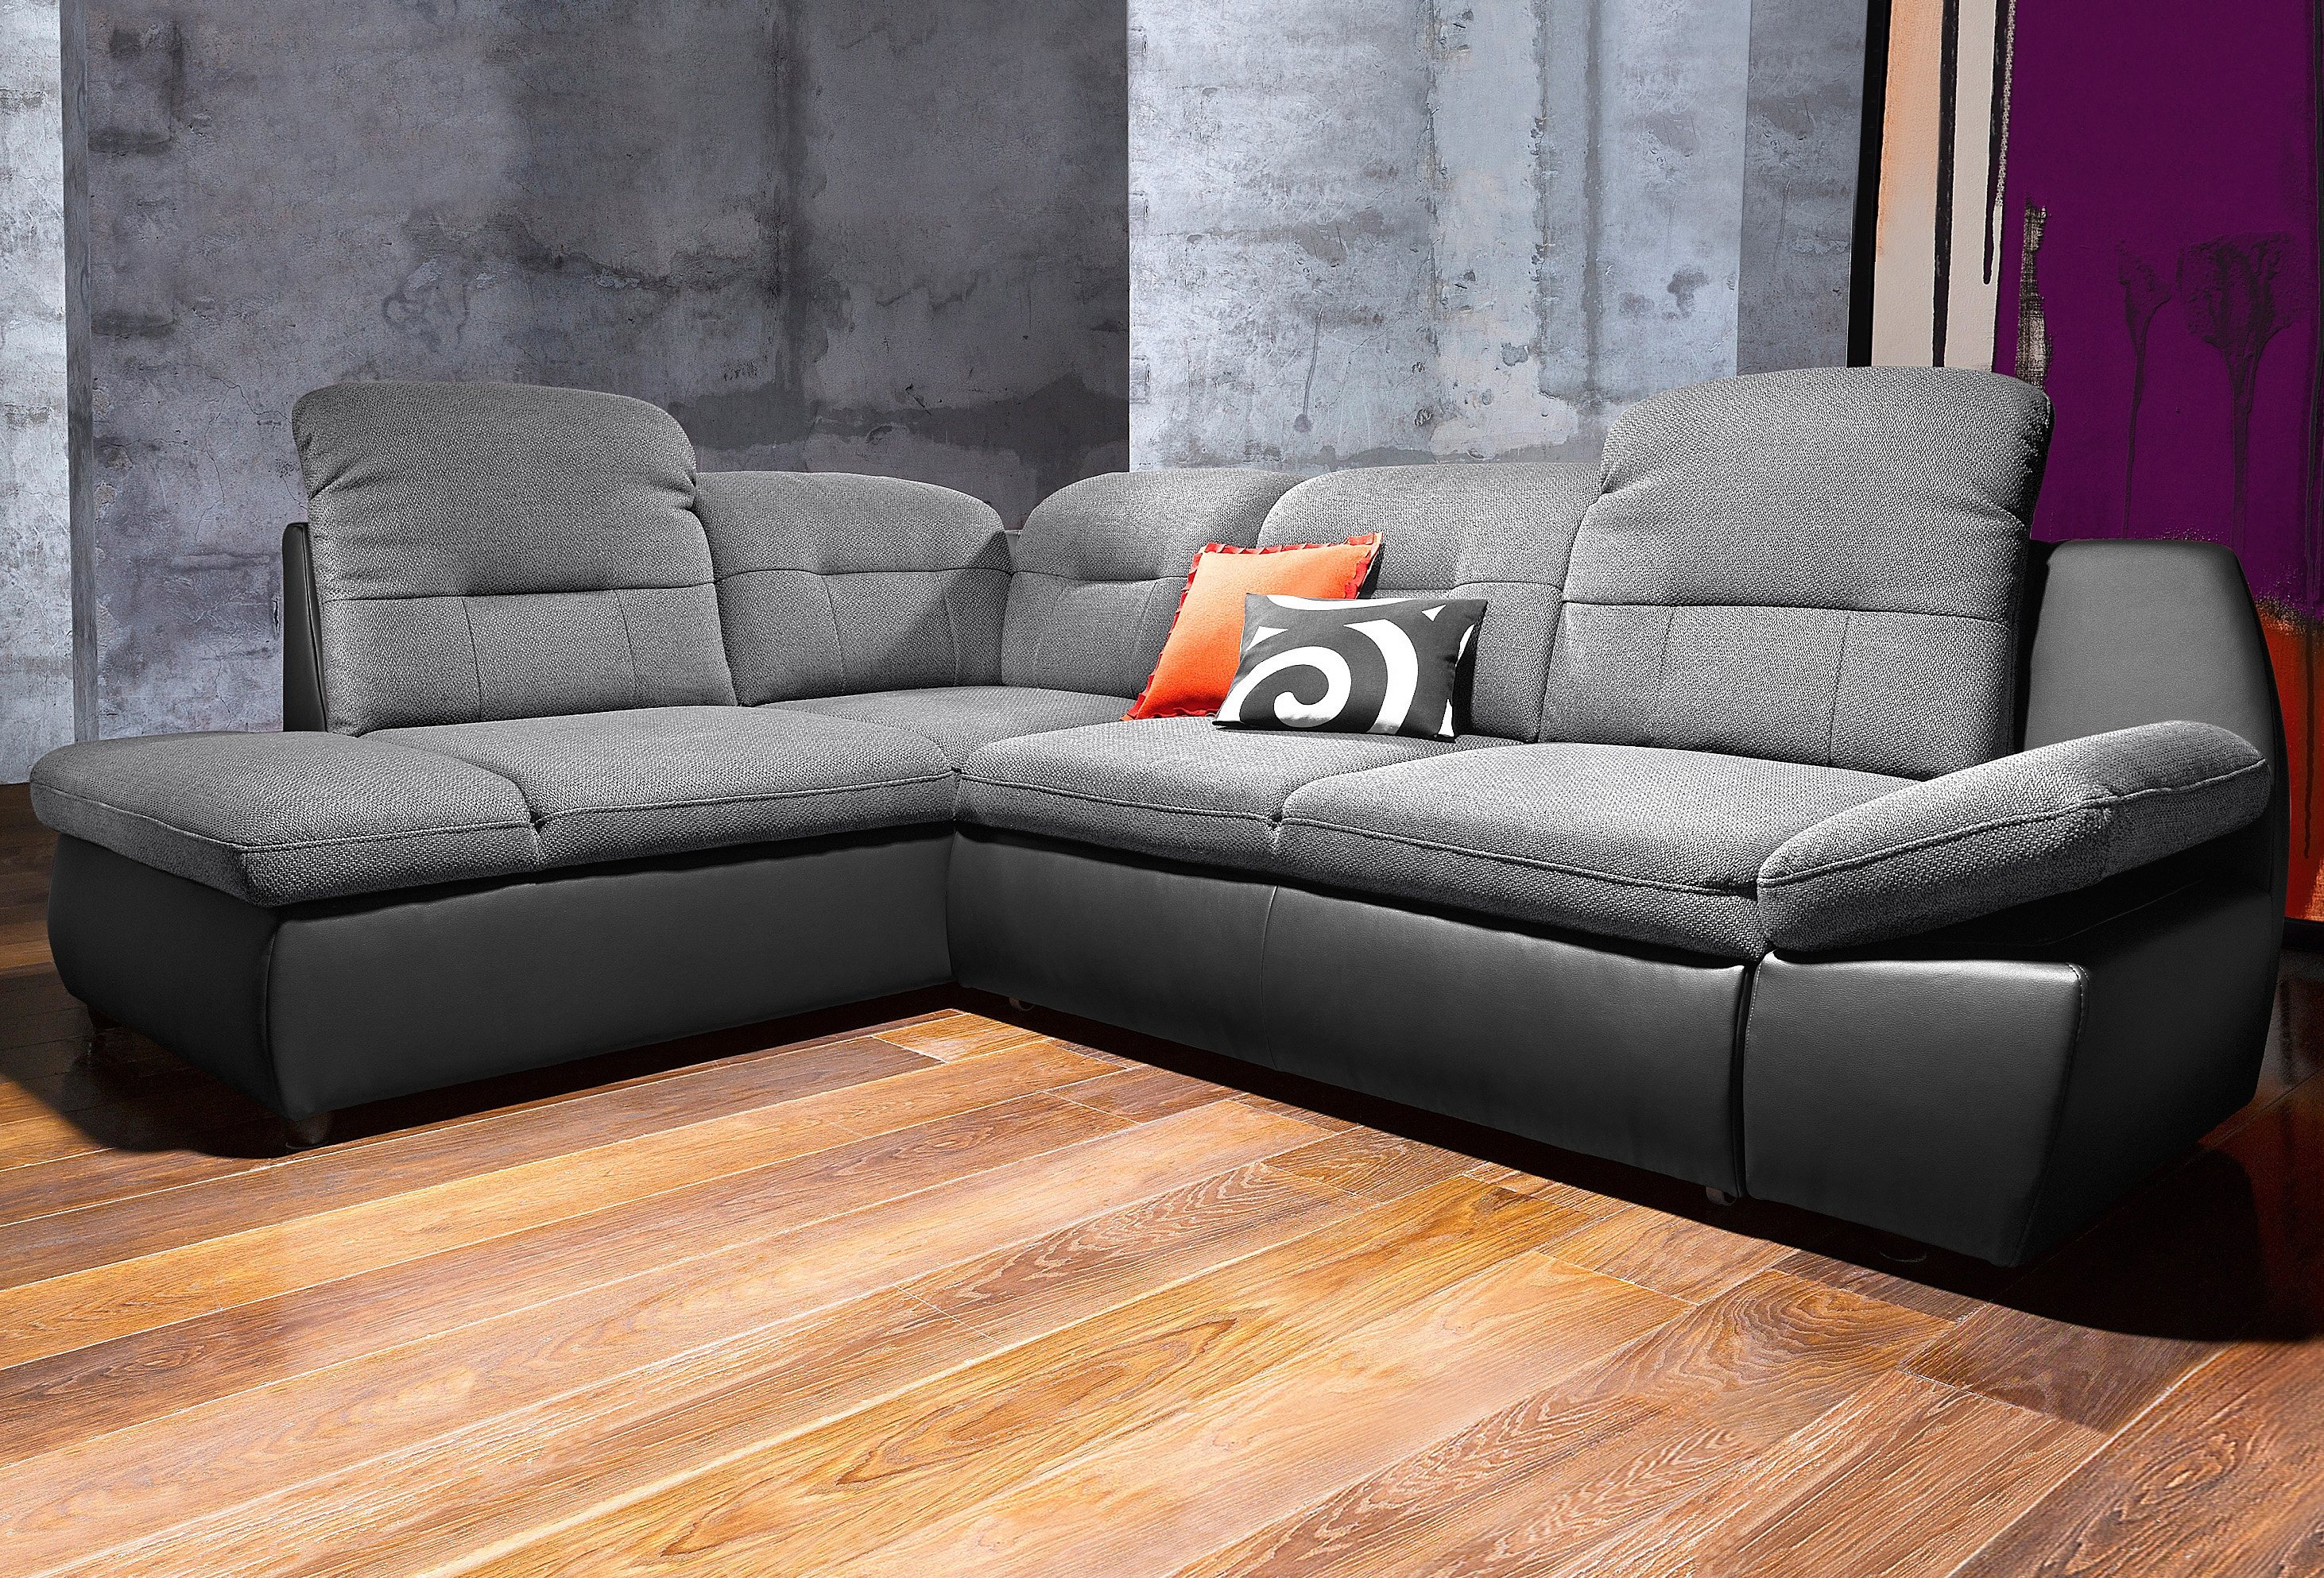 Polsterecke city sofa wahlweise mit bettfunktion schwarz for Couch mit bettfunktion und bettkasten